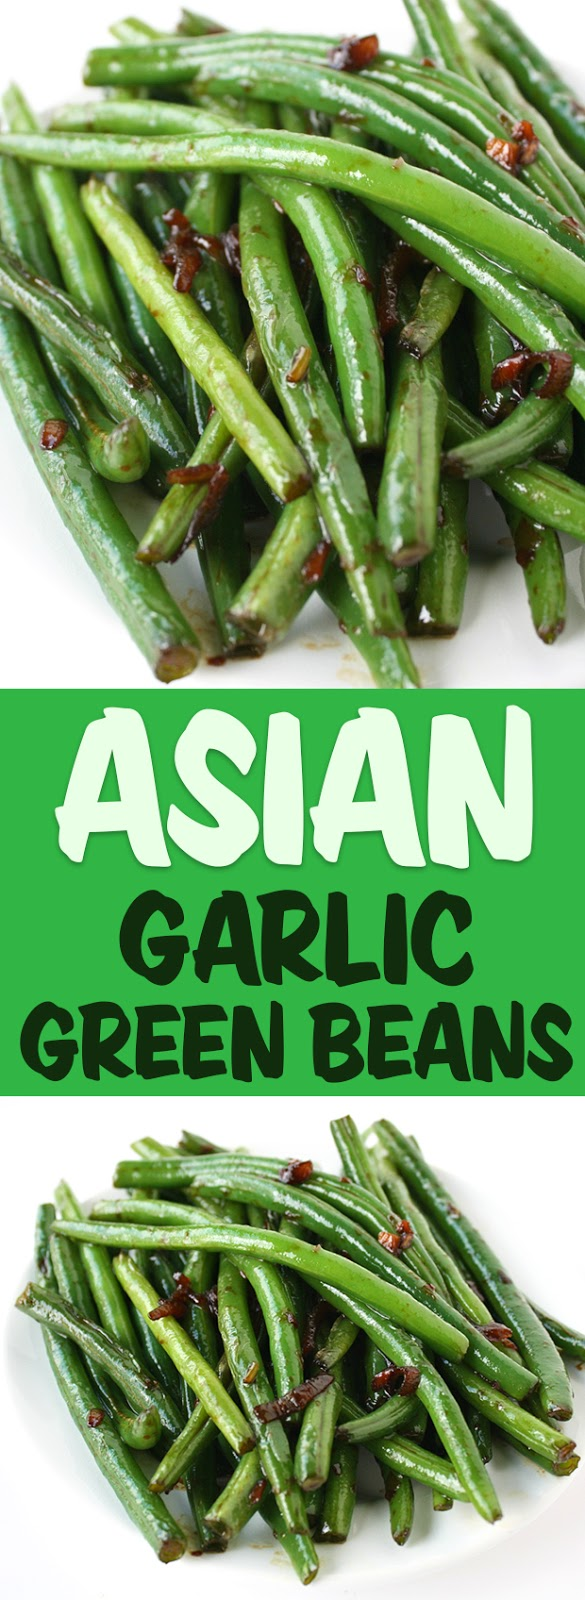 Photo collage of Asian Garlic Green Beans